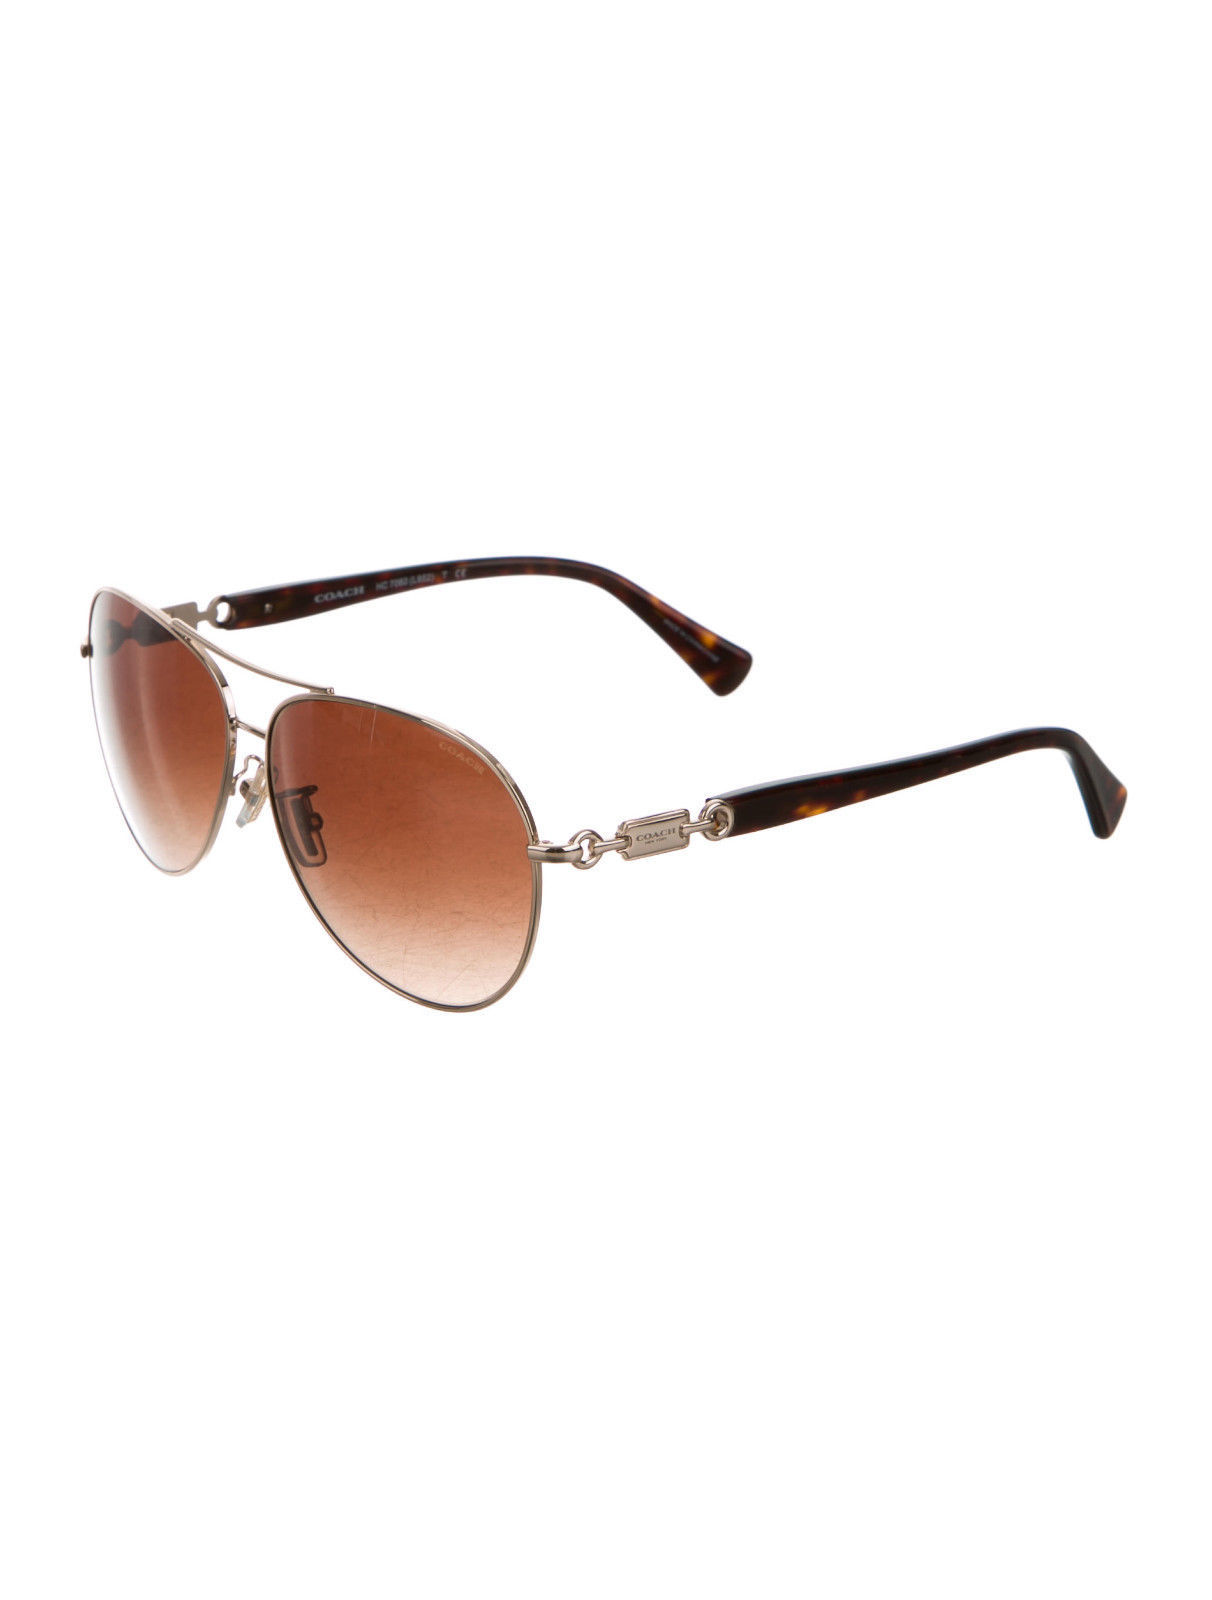 Authentic Coach Aviator Gradient Lens Sunglasses - Brand New - Free Shipping